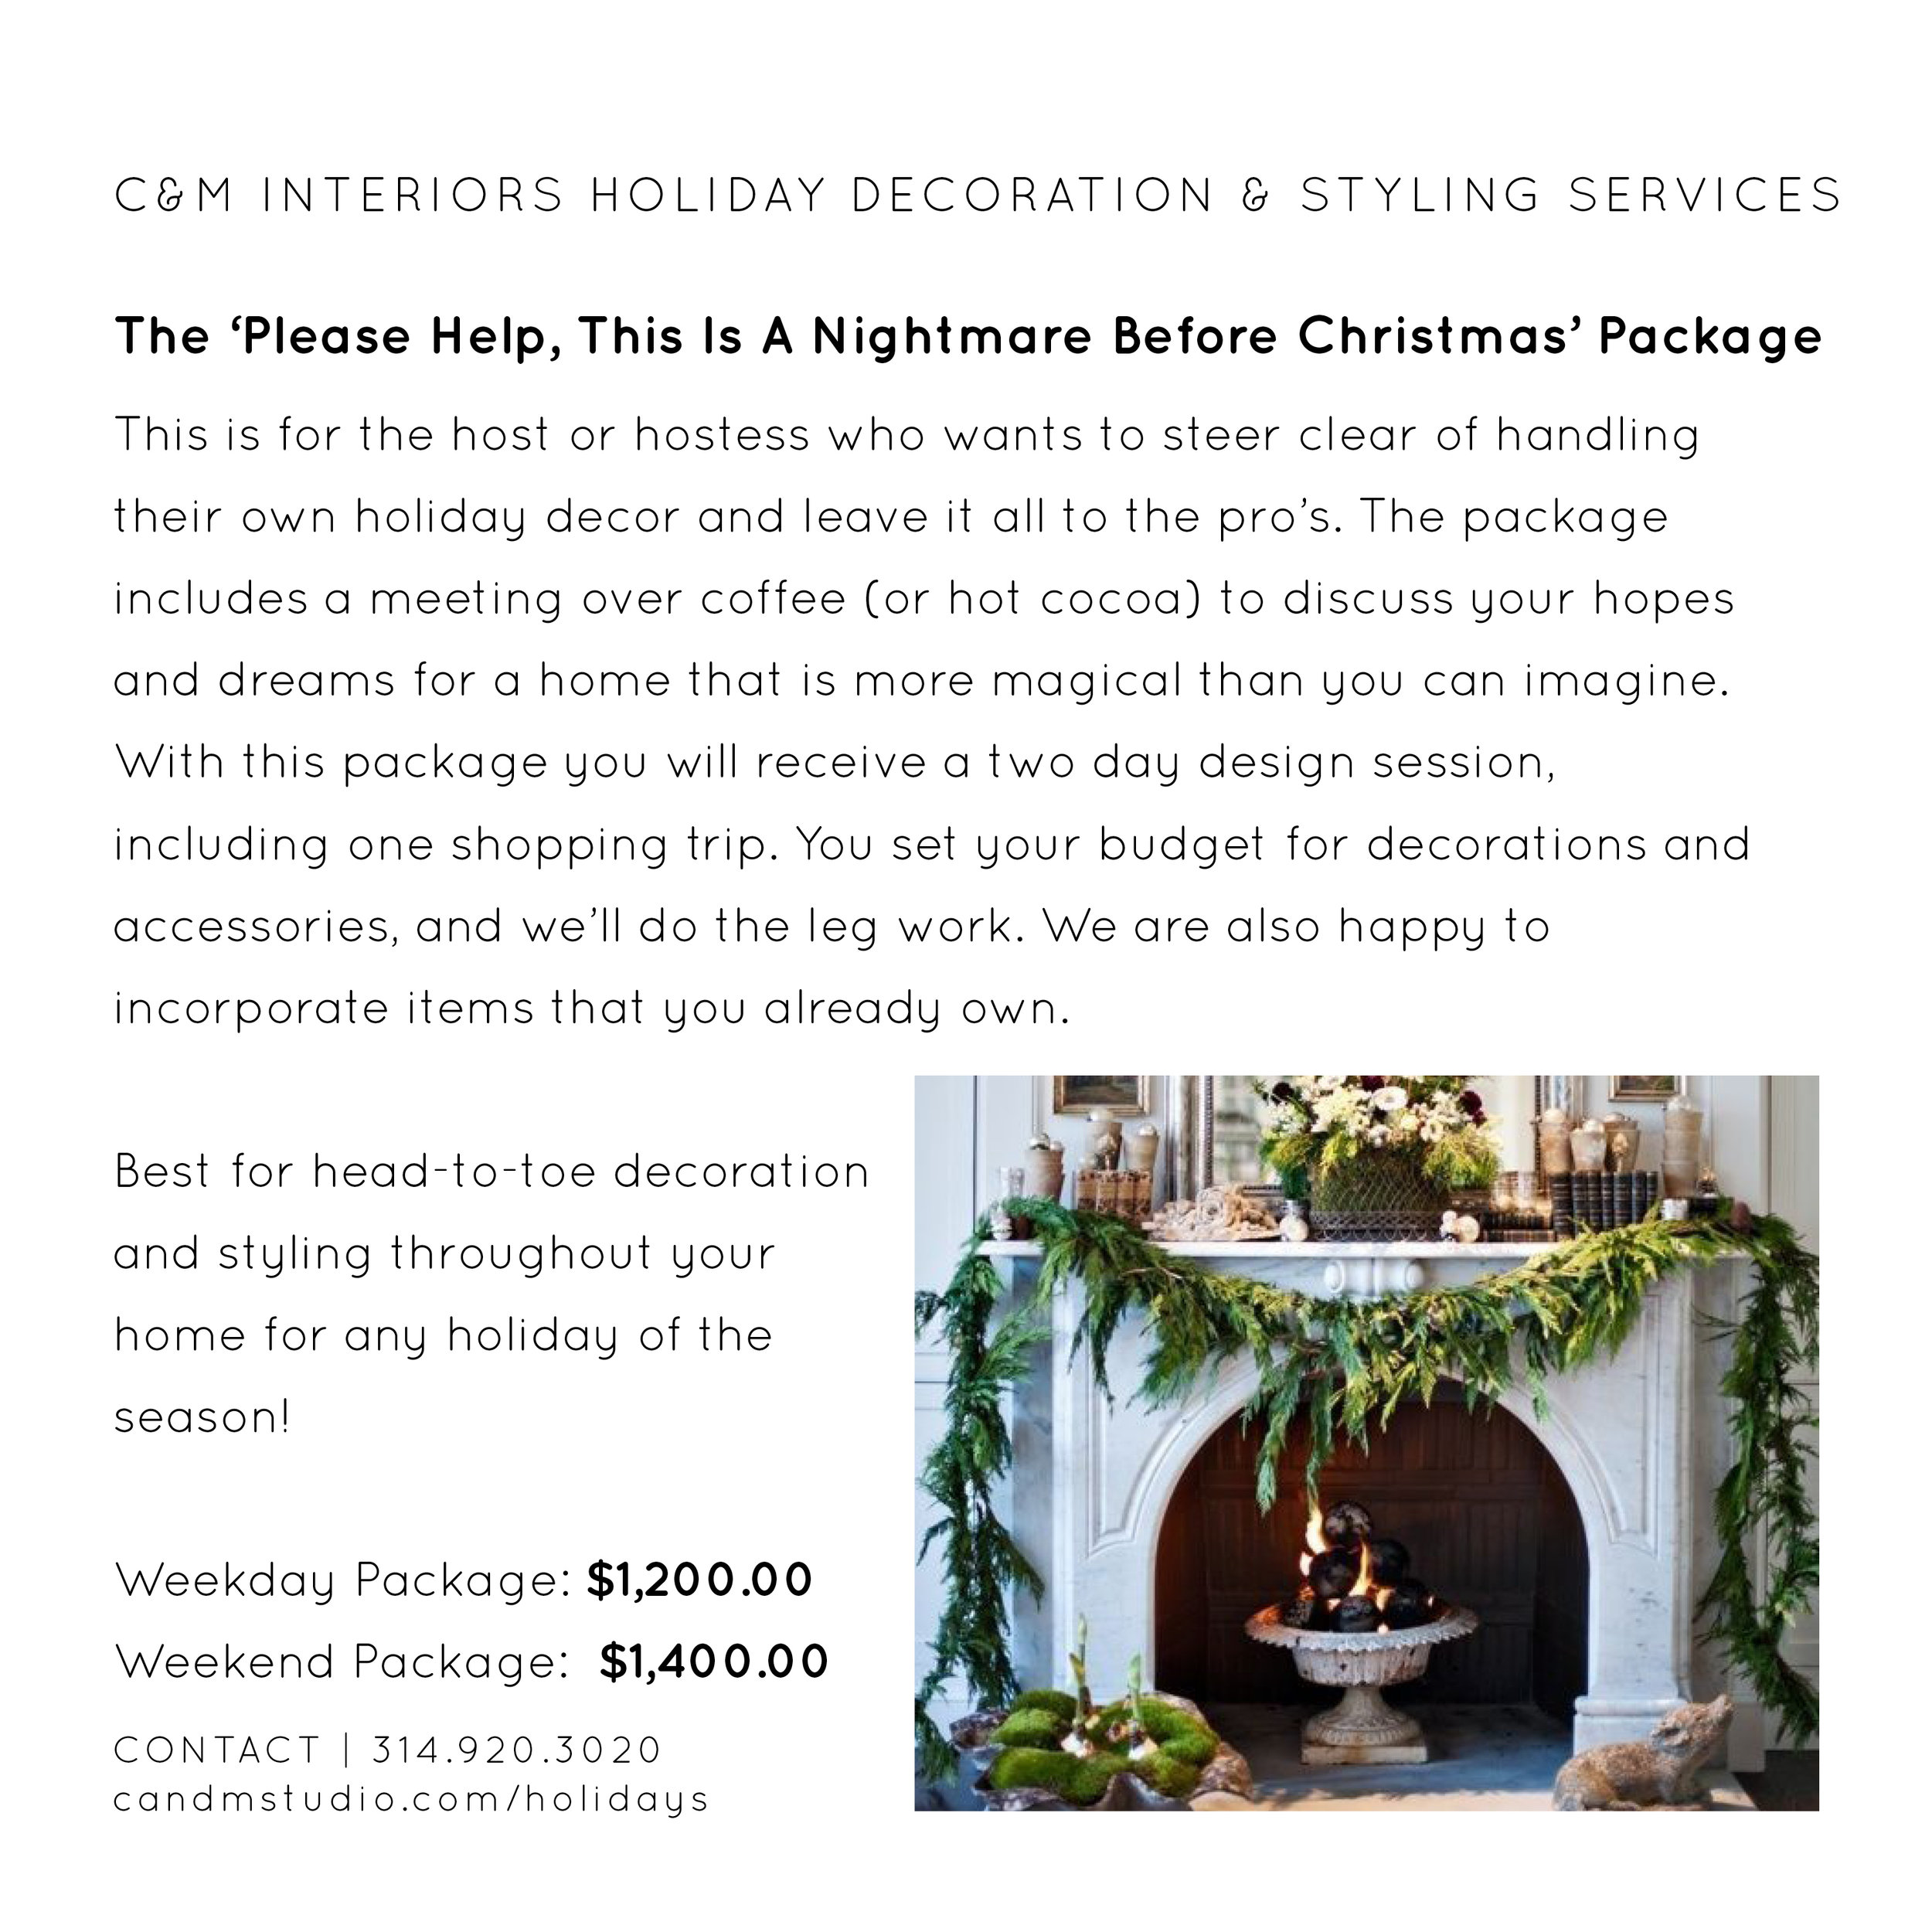 C&M Interiors Holiday Decoration and Styling Services 20175.jpg